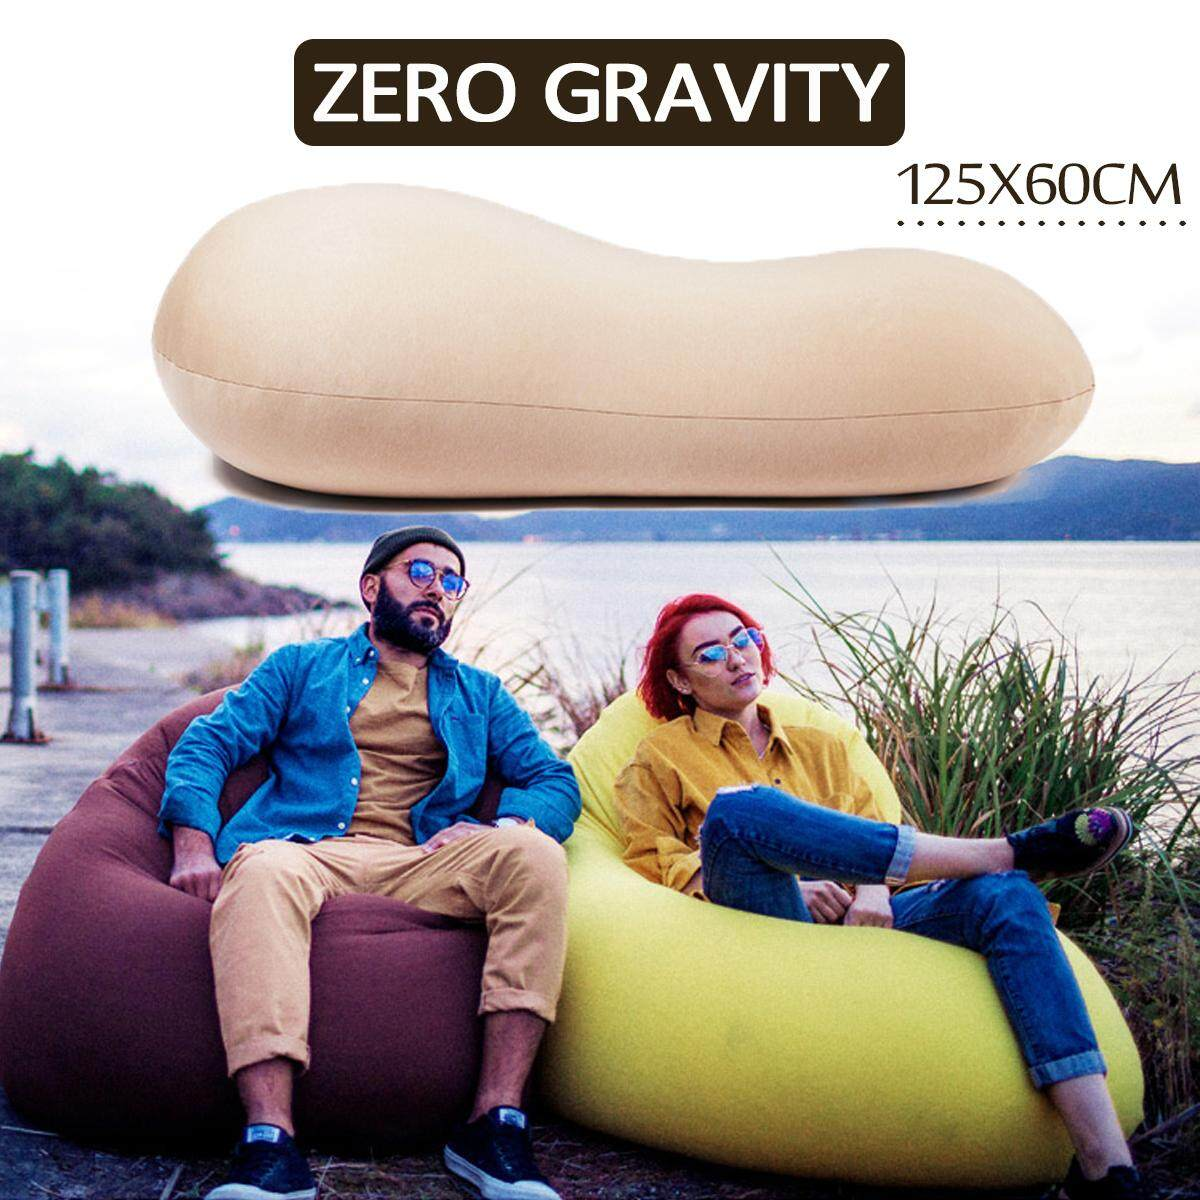 bean bag Zero Gravity Large Bean Bag Chairs Couch Sofa Cover Indoor Lounger Adults Kids